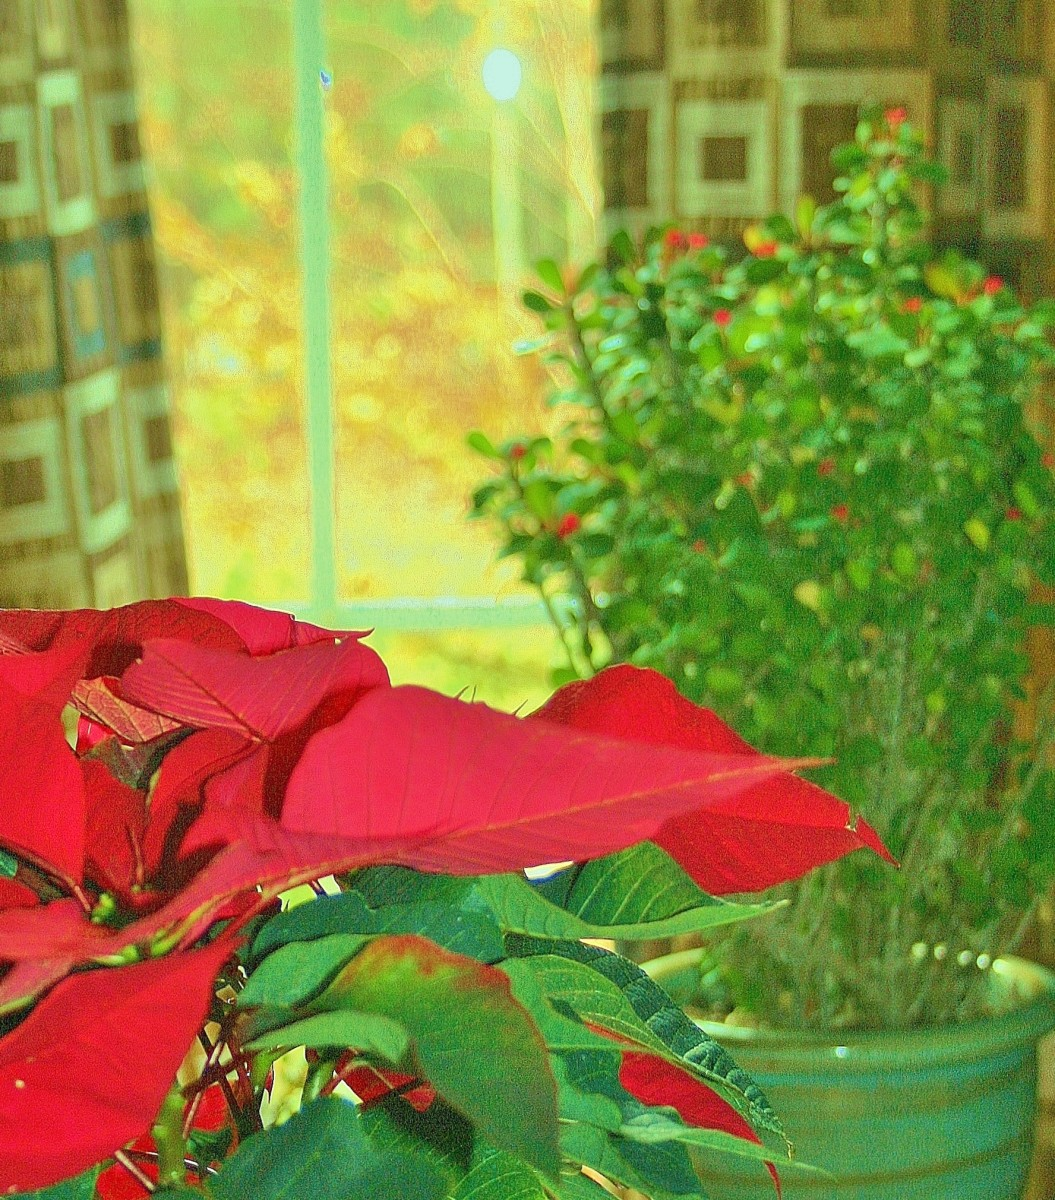 Placing poinsettias a few feet from a south-facing window will prevent them from fading in too-strong light.